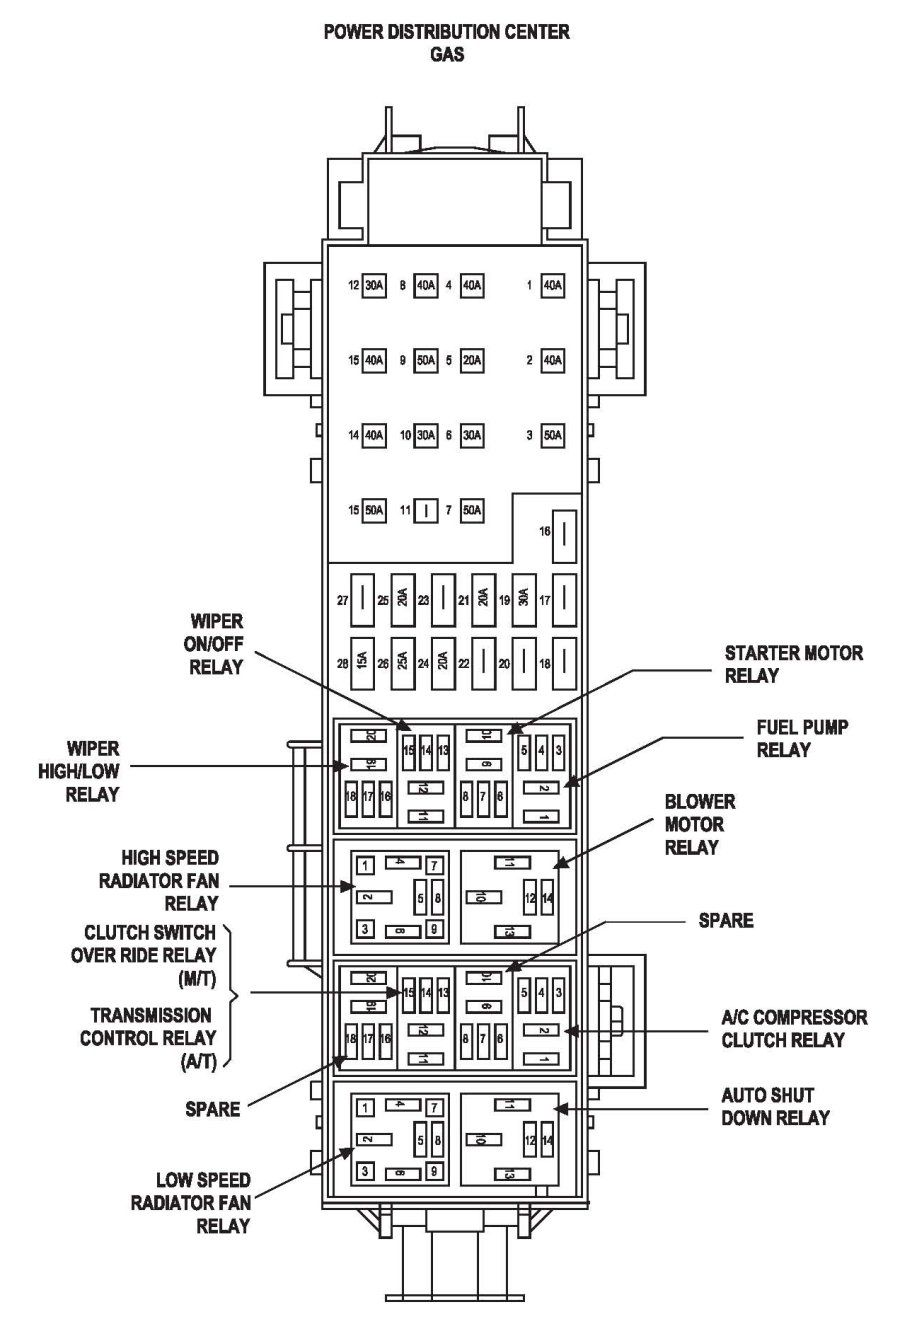 jeep liberty fuse box diagram image details jeep liberty rh pinterest com 2004 jeep liberty interior fuse box diagram 04 jeep liberty fuse box diagram